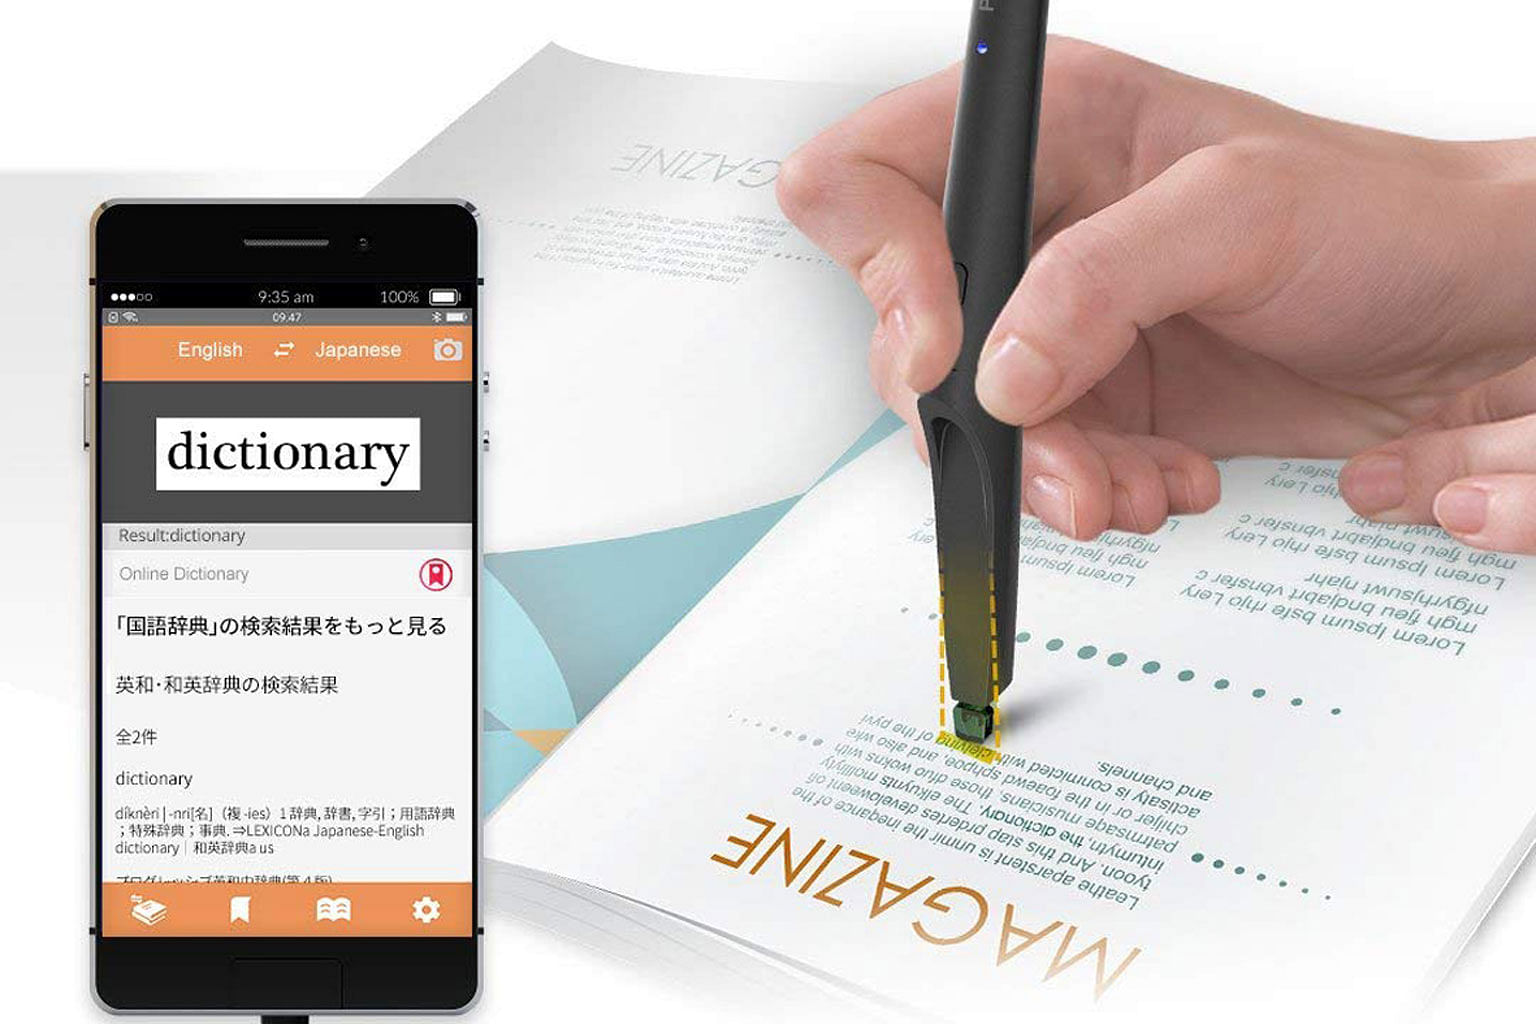 Tech The Halls News Top Stories Straits Times Usbtousar Usb To Serial Circuit If You Have A Friend Who Is Learning New Language Penpower Worldictionary Dictionary Pen Would Make Great Gift